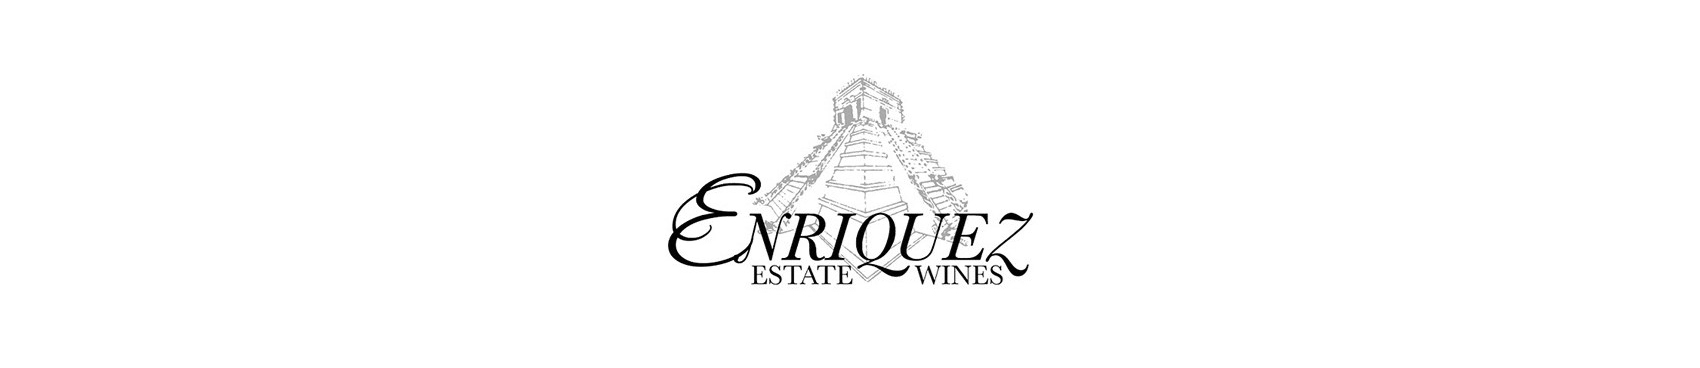 Enriquez Estate Wines